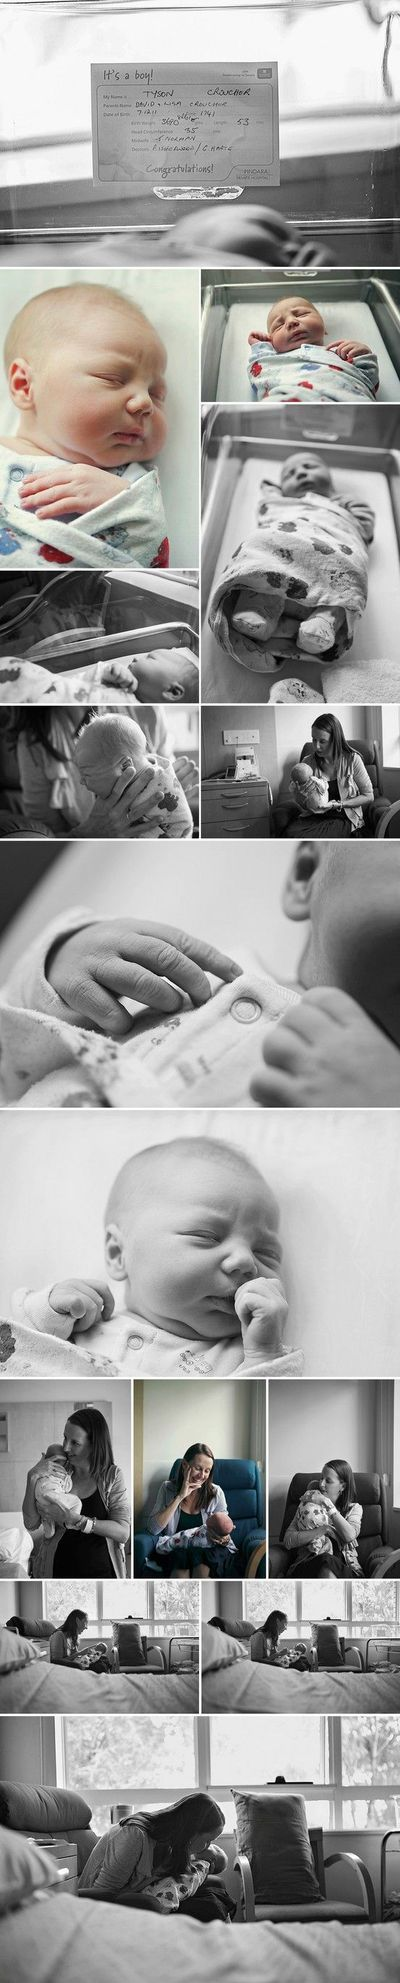 hospital session. Who is having a baby? I love these photo ideas; Maybe @shelby c Bradshaw can team up with my doula journeys.